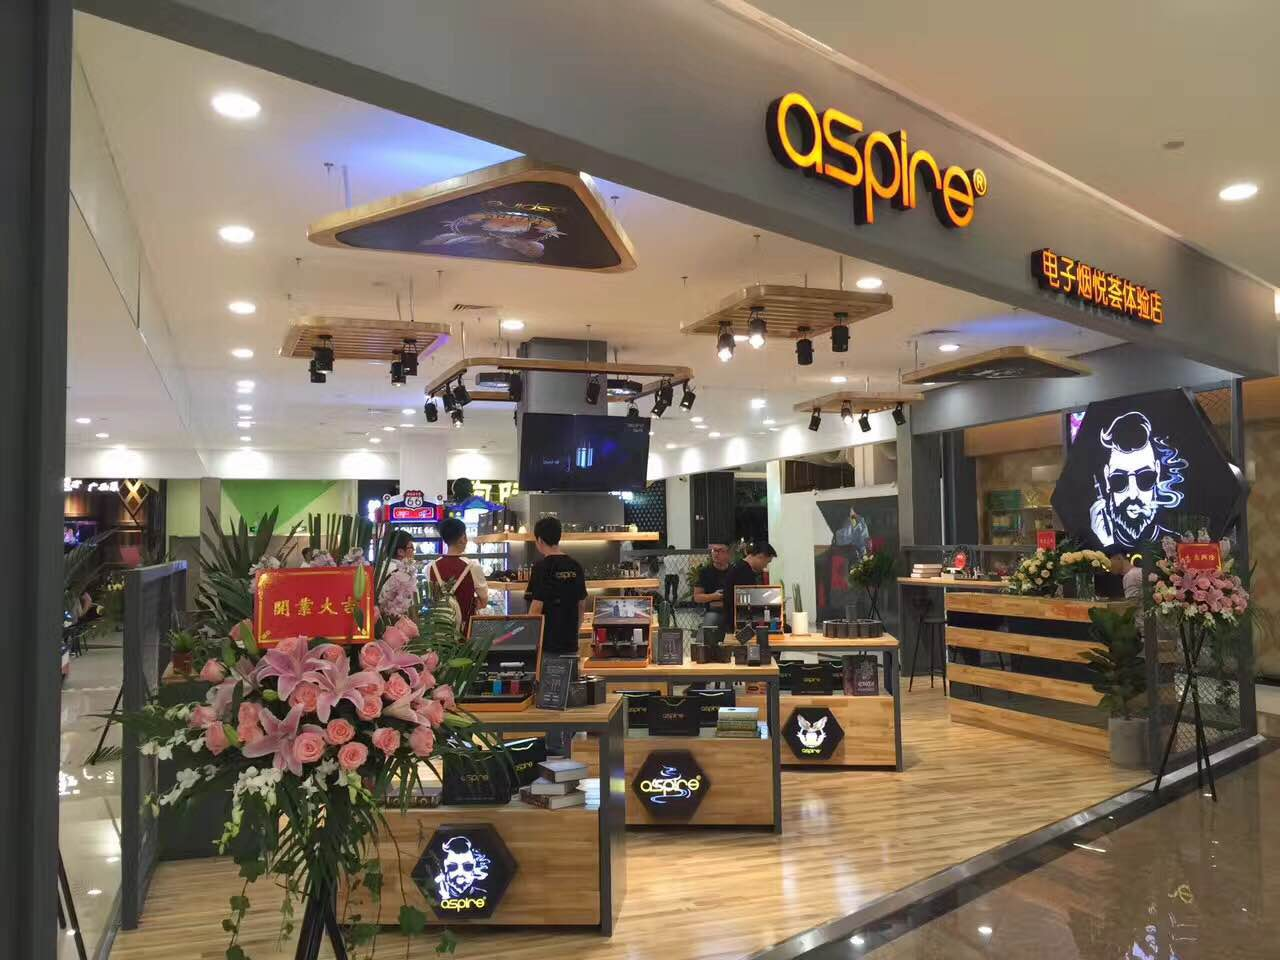 aspire domestic vape shop